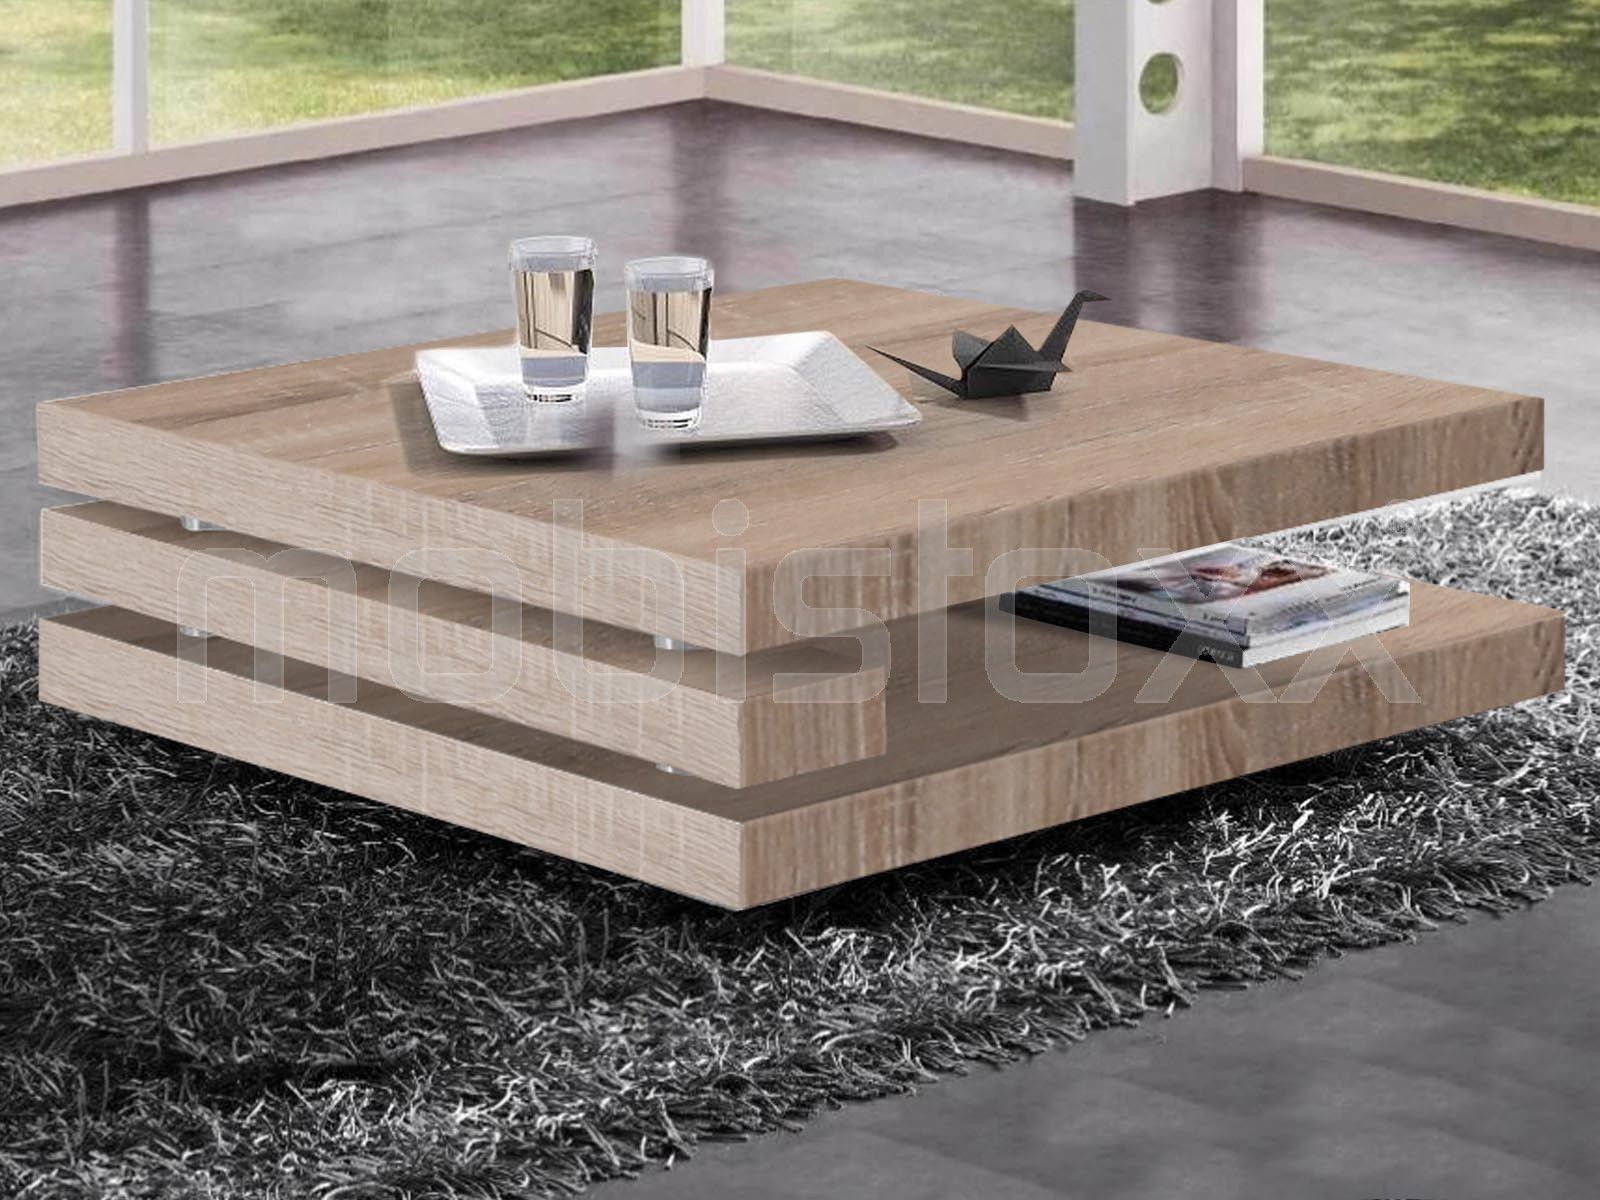 Table Basse Antonio Carree Sonoma Clair Table Basse Table Basse Design Table Basse Bois Clair